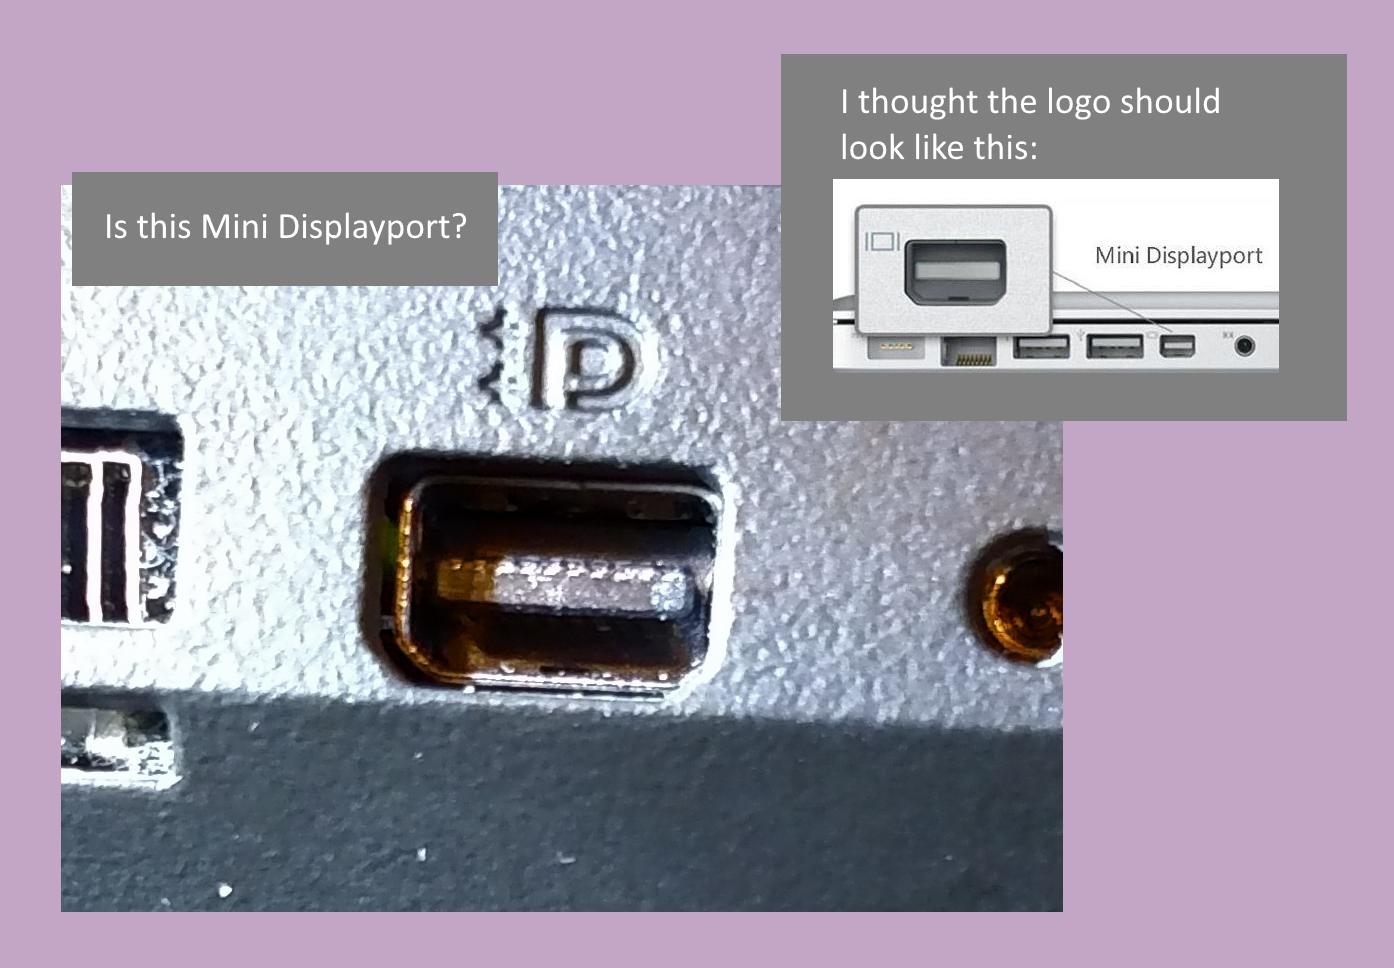 What port is this? Is this mini displayport?.